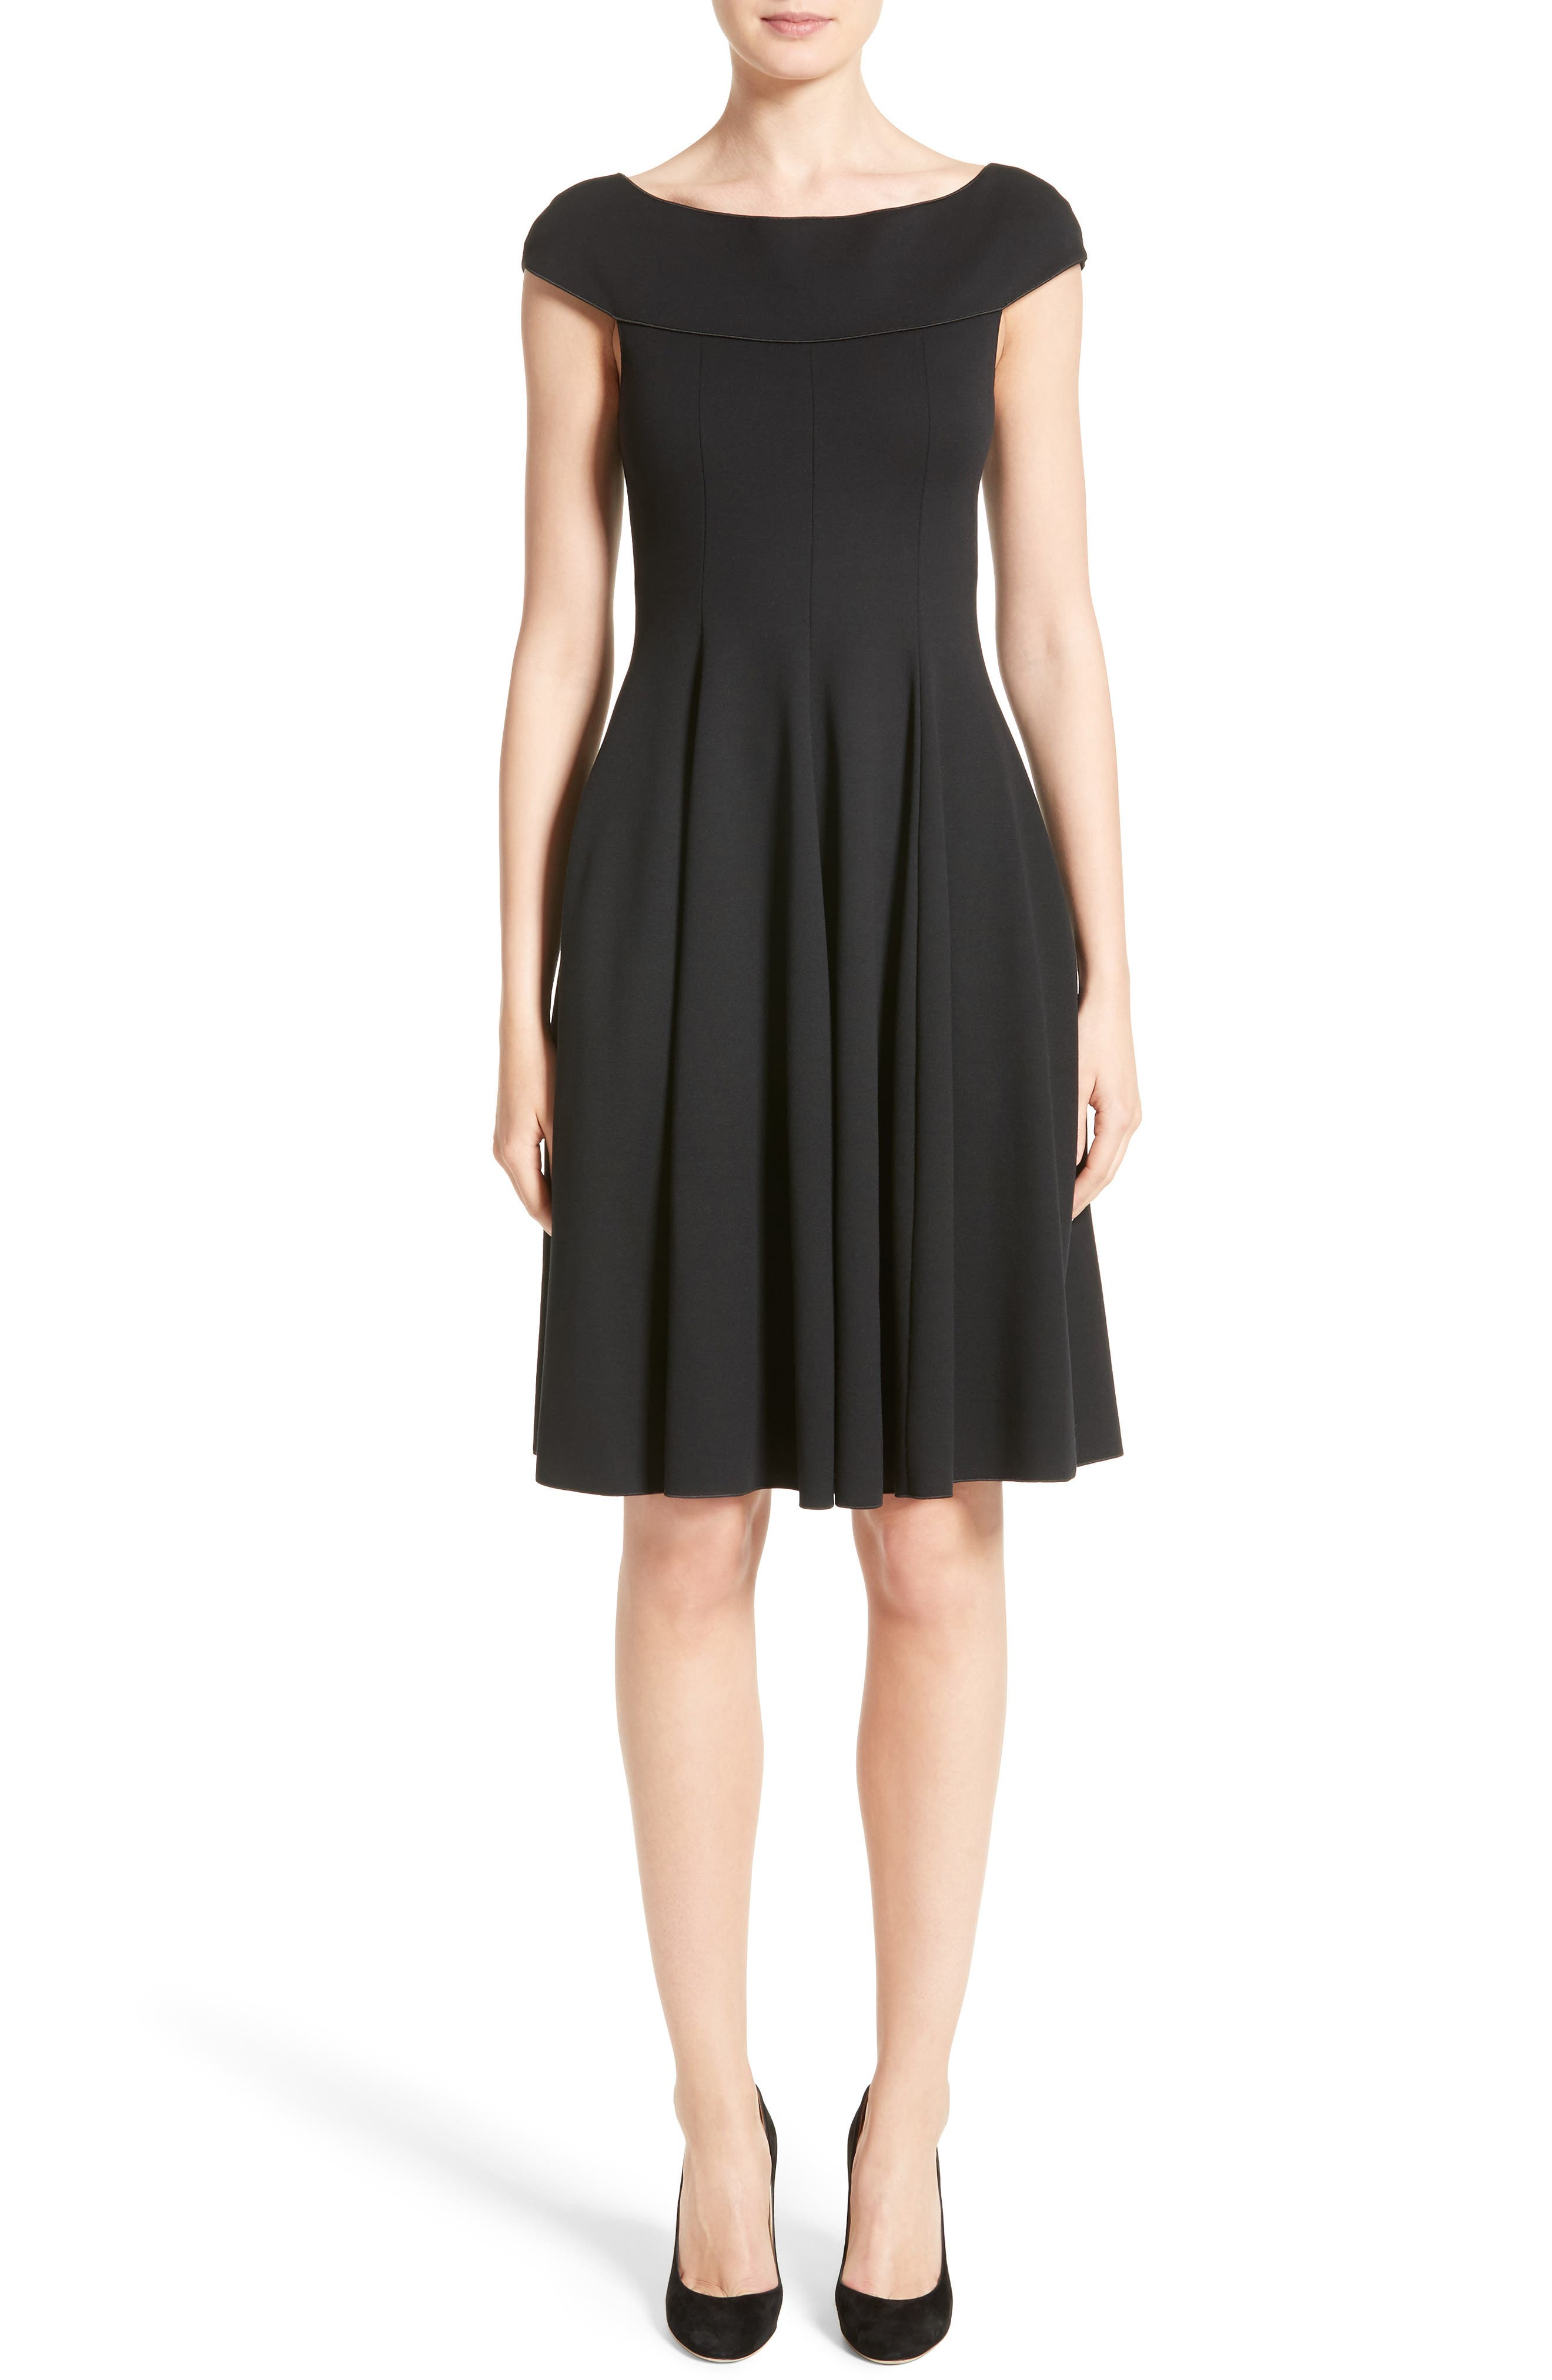 Alternate Image 1 Selected - Armani Collezioni Off the Shoulder Fit & Flare Dress